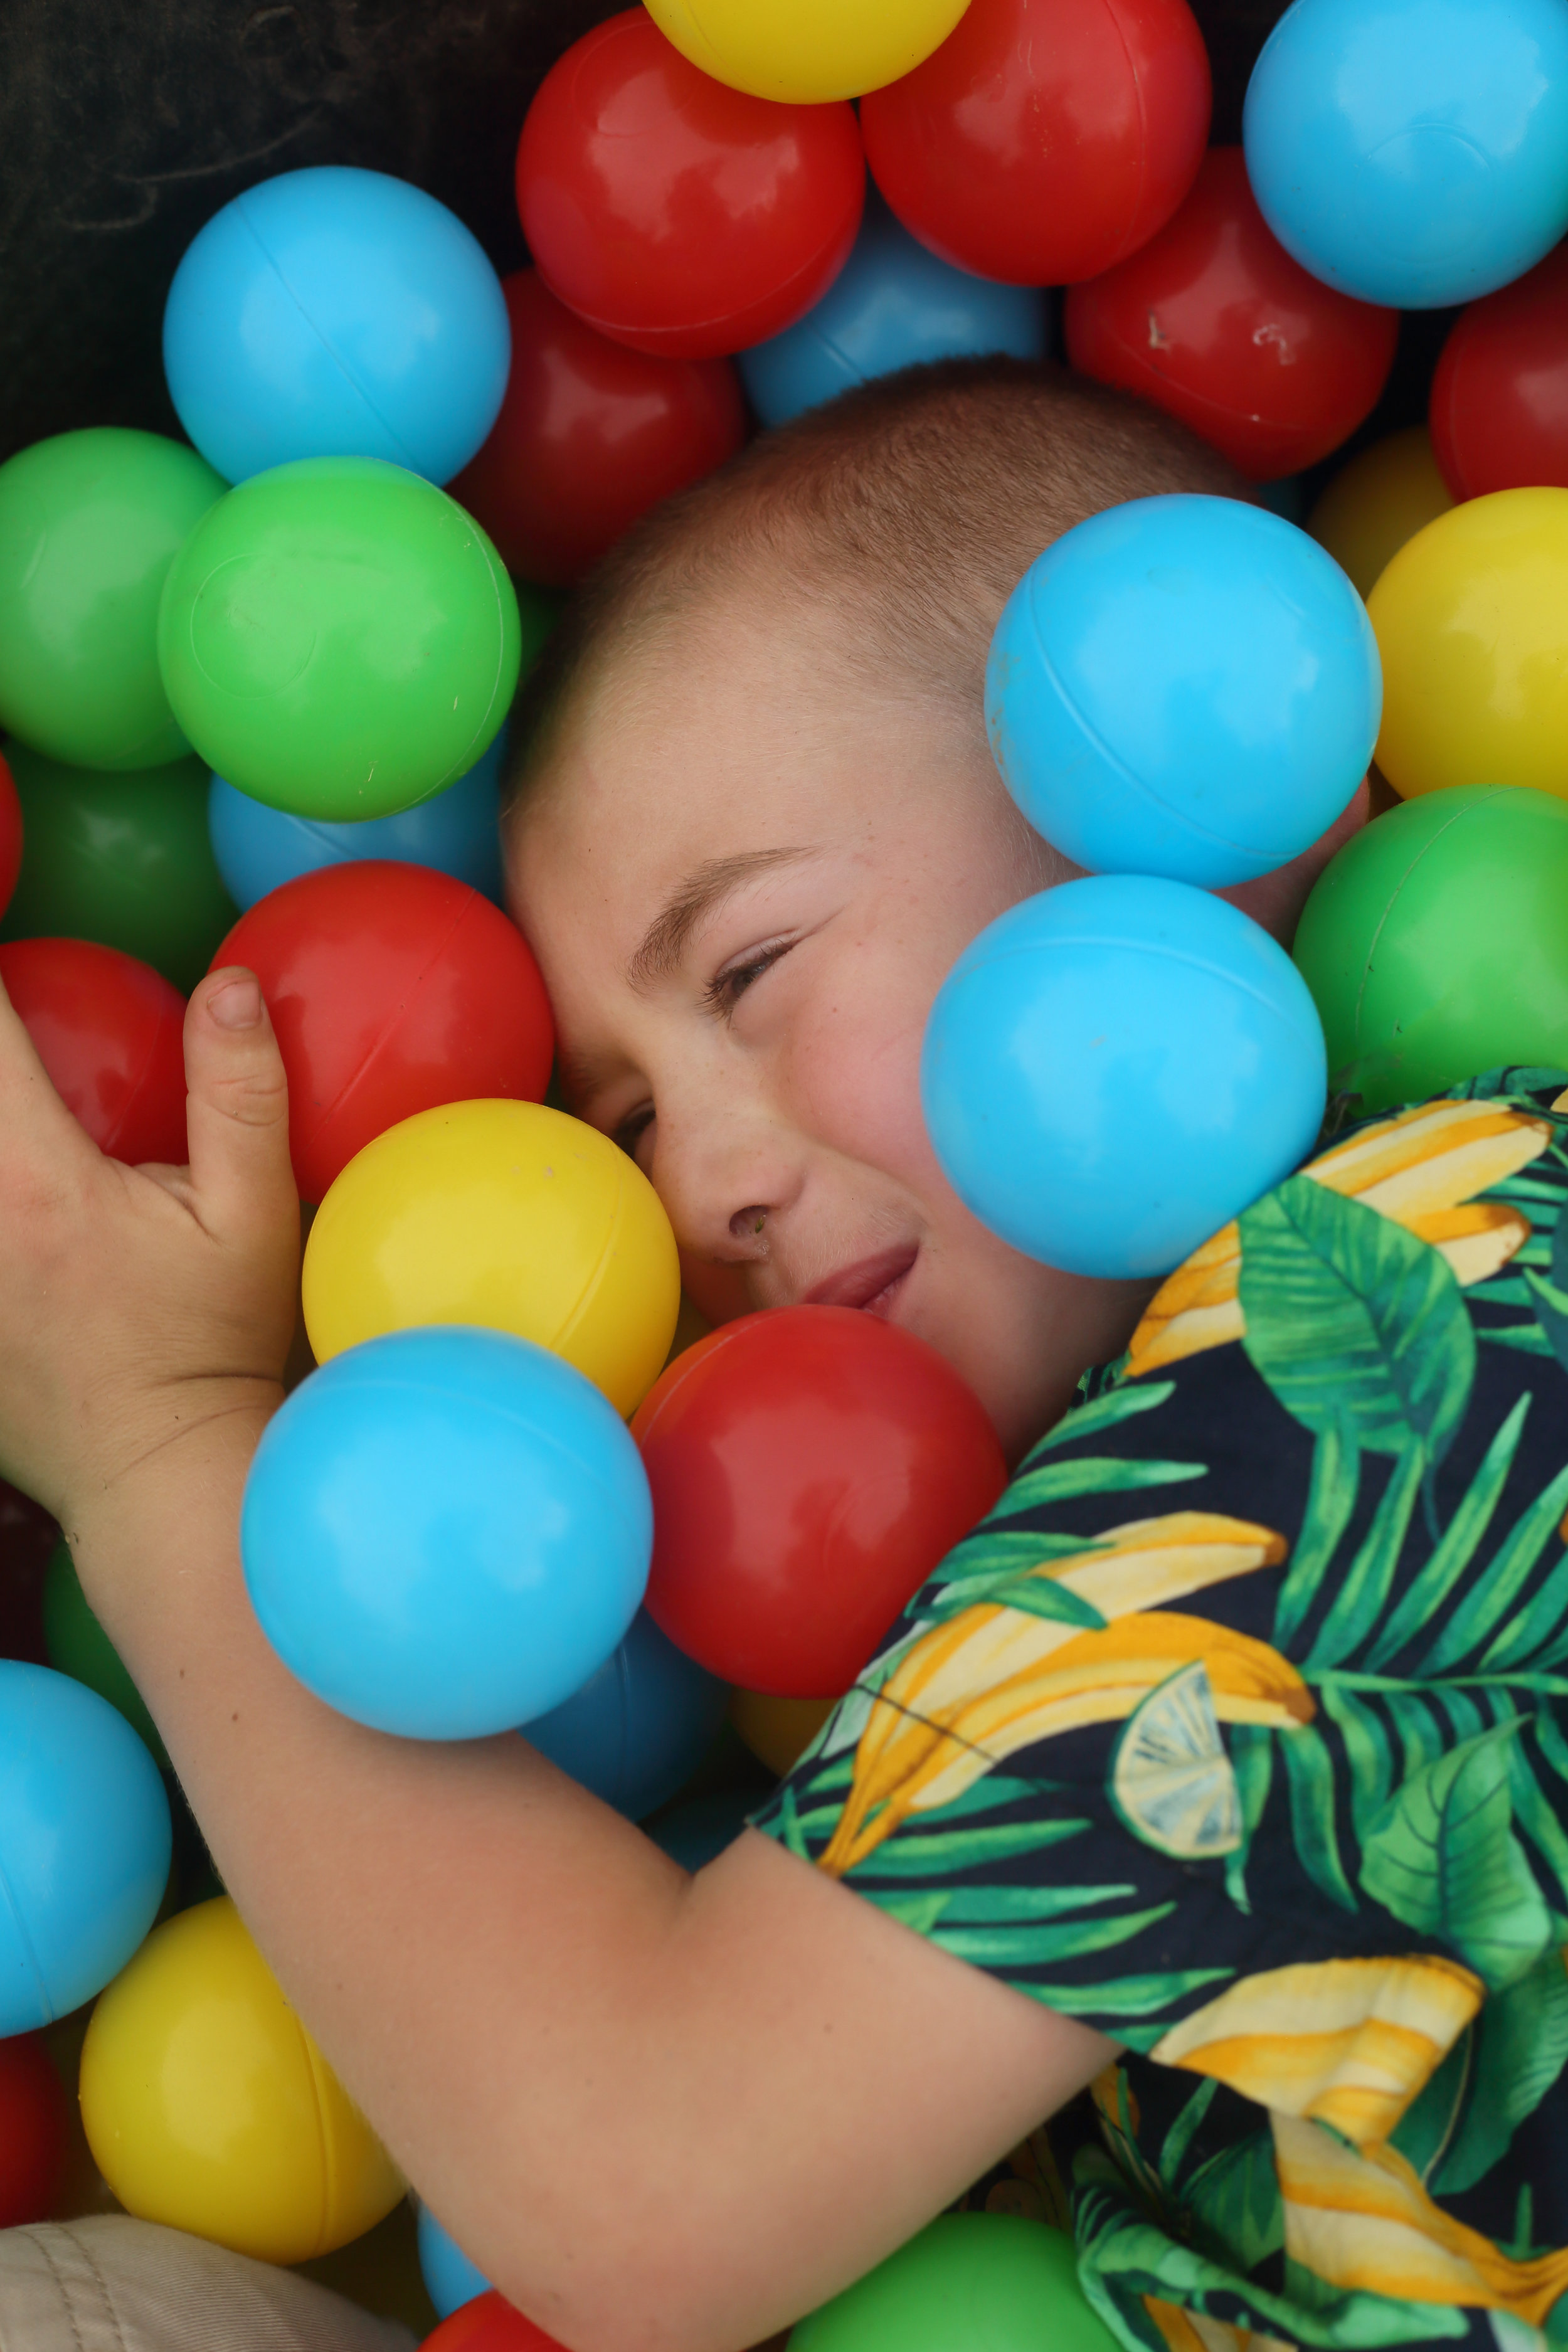 There was a huge feeding trough full of plastic balls, which proved the ultimate photo opp for Blaine